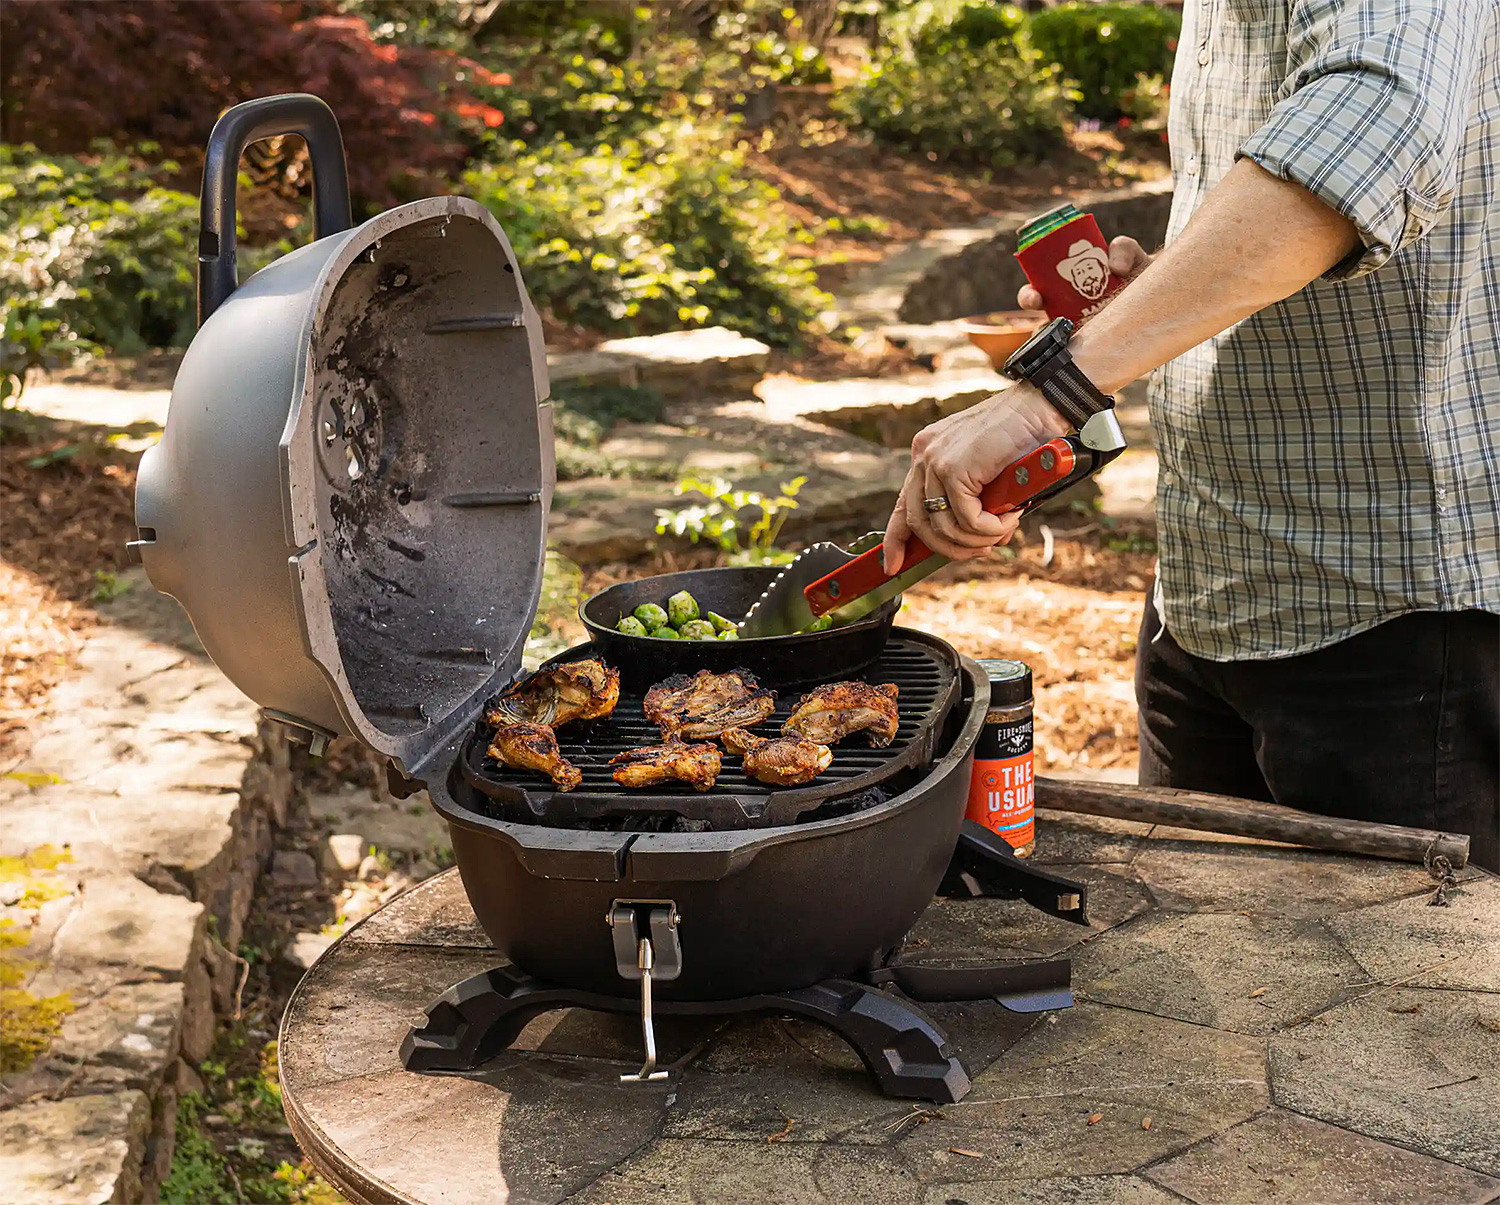 Take Your Smoke Show on the Road with the PKGo Grill at werd.com